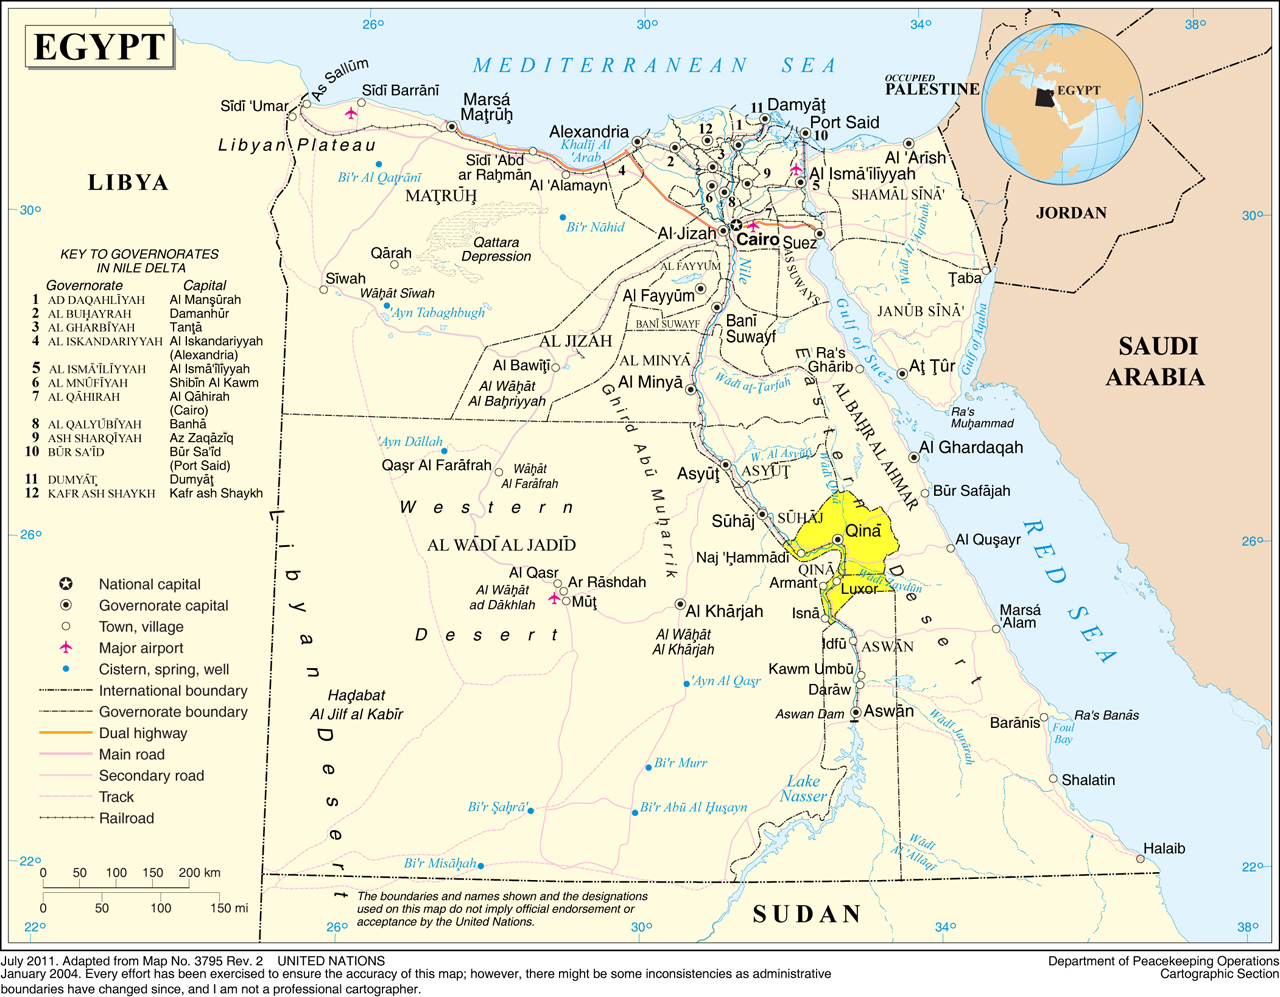 The Nile Valley Upper Egypt